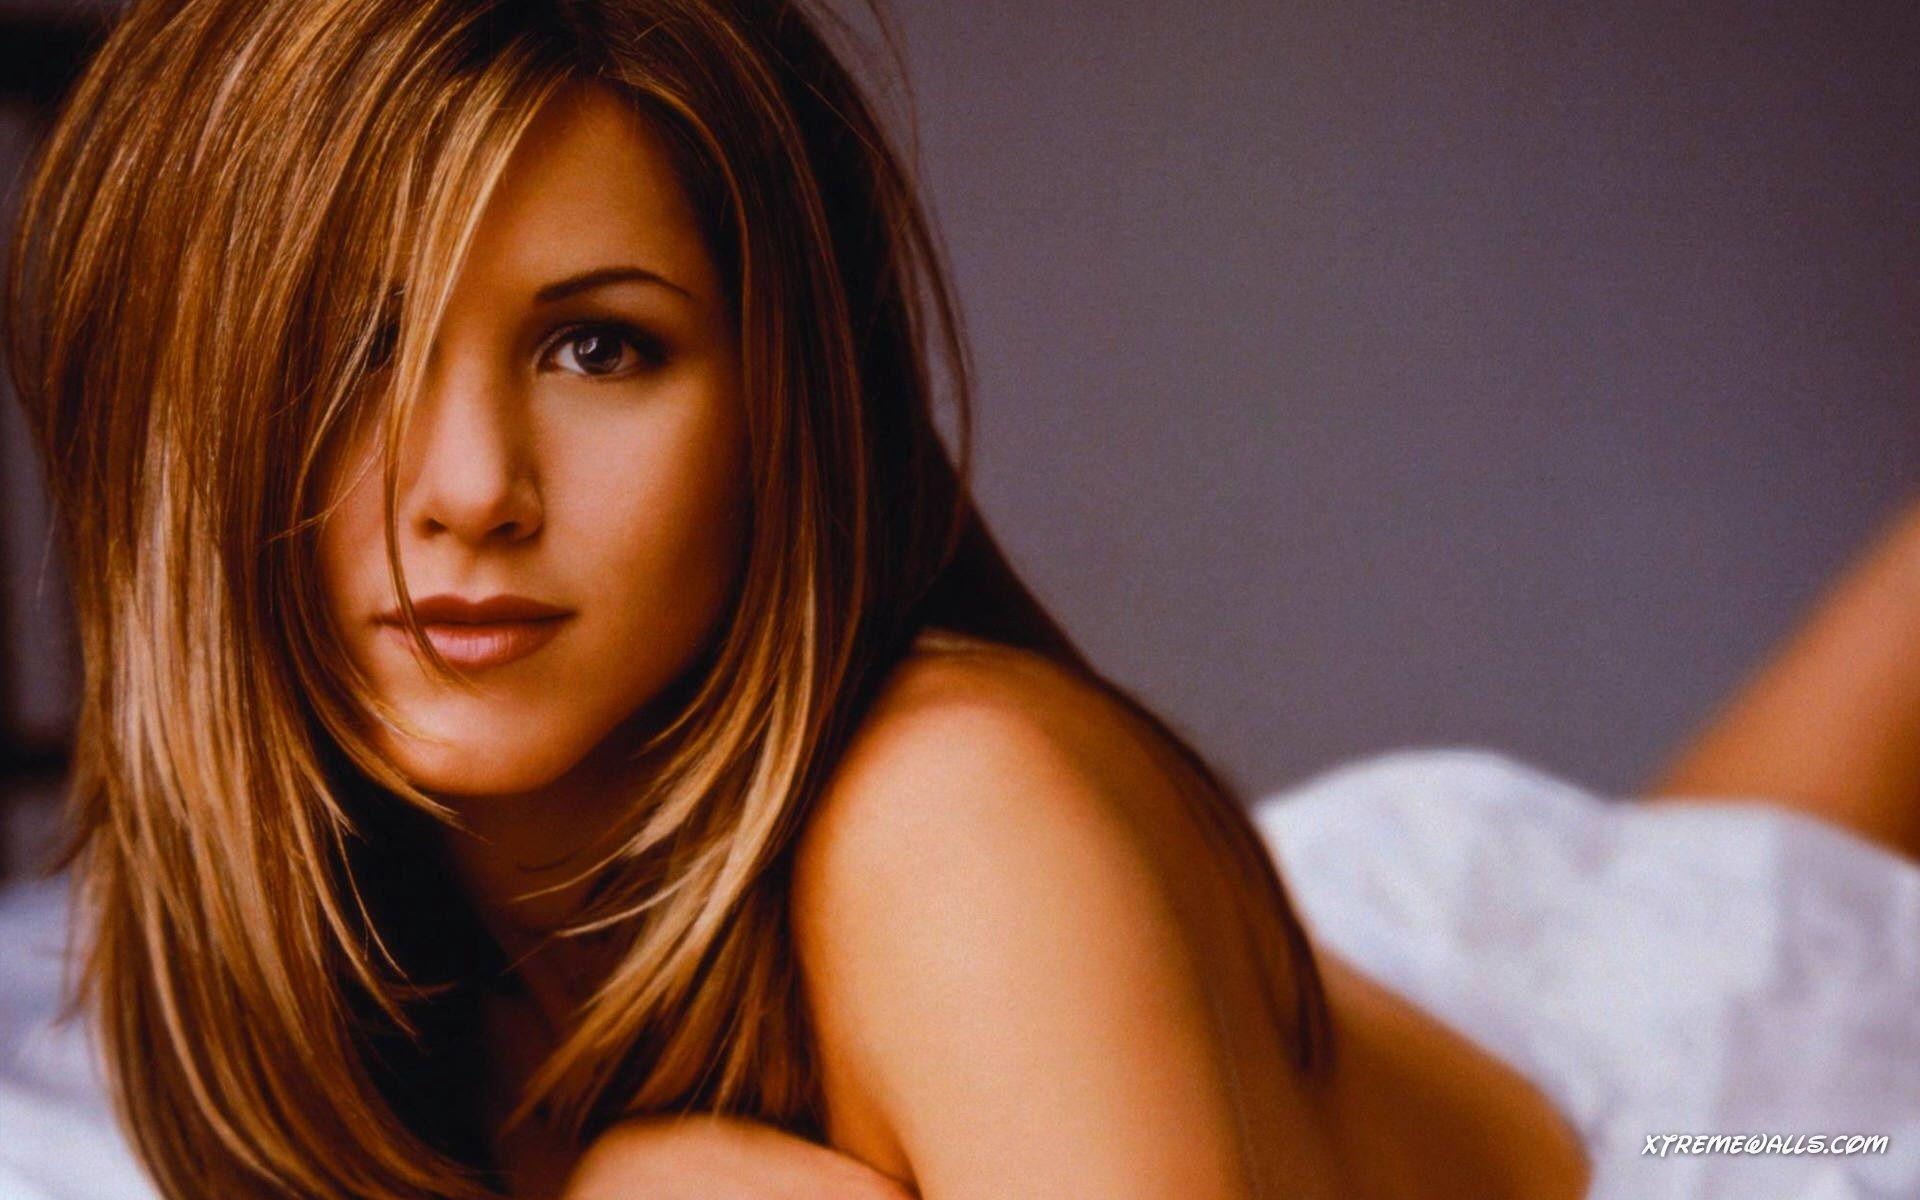 50 Free Jennifer Aniston Wallpaper HD for Desktop | Modny73